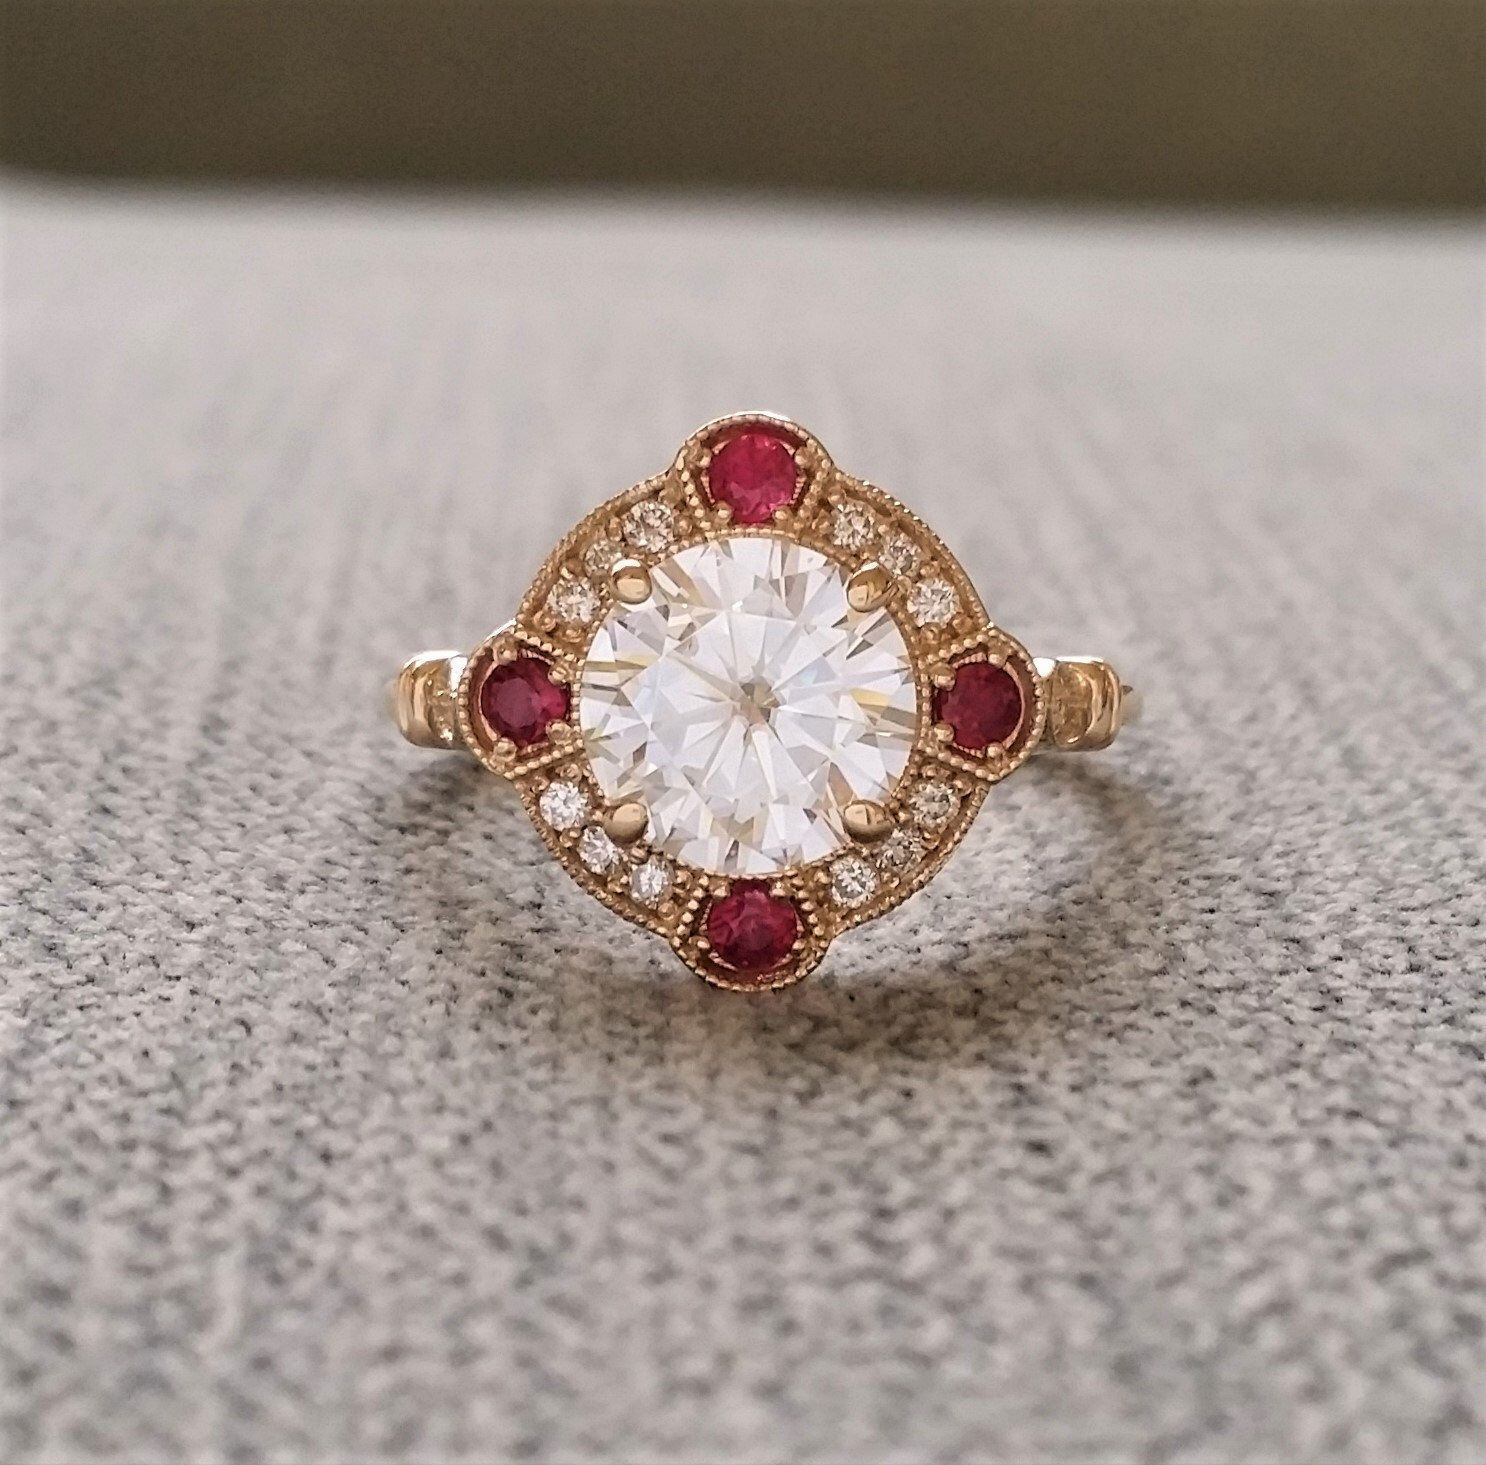 Estate halo ef moissanite ruby diamond antique engagement ring